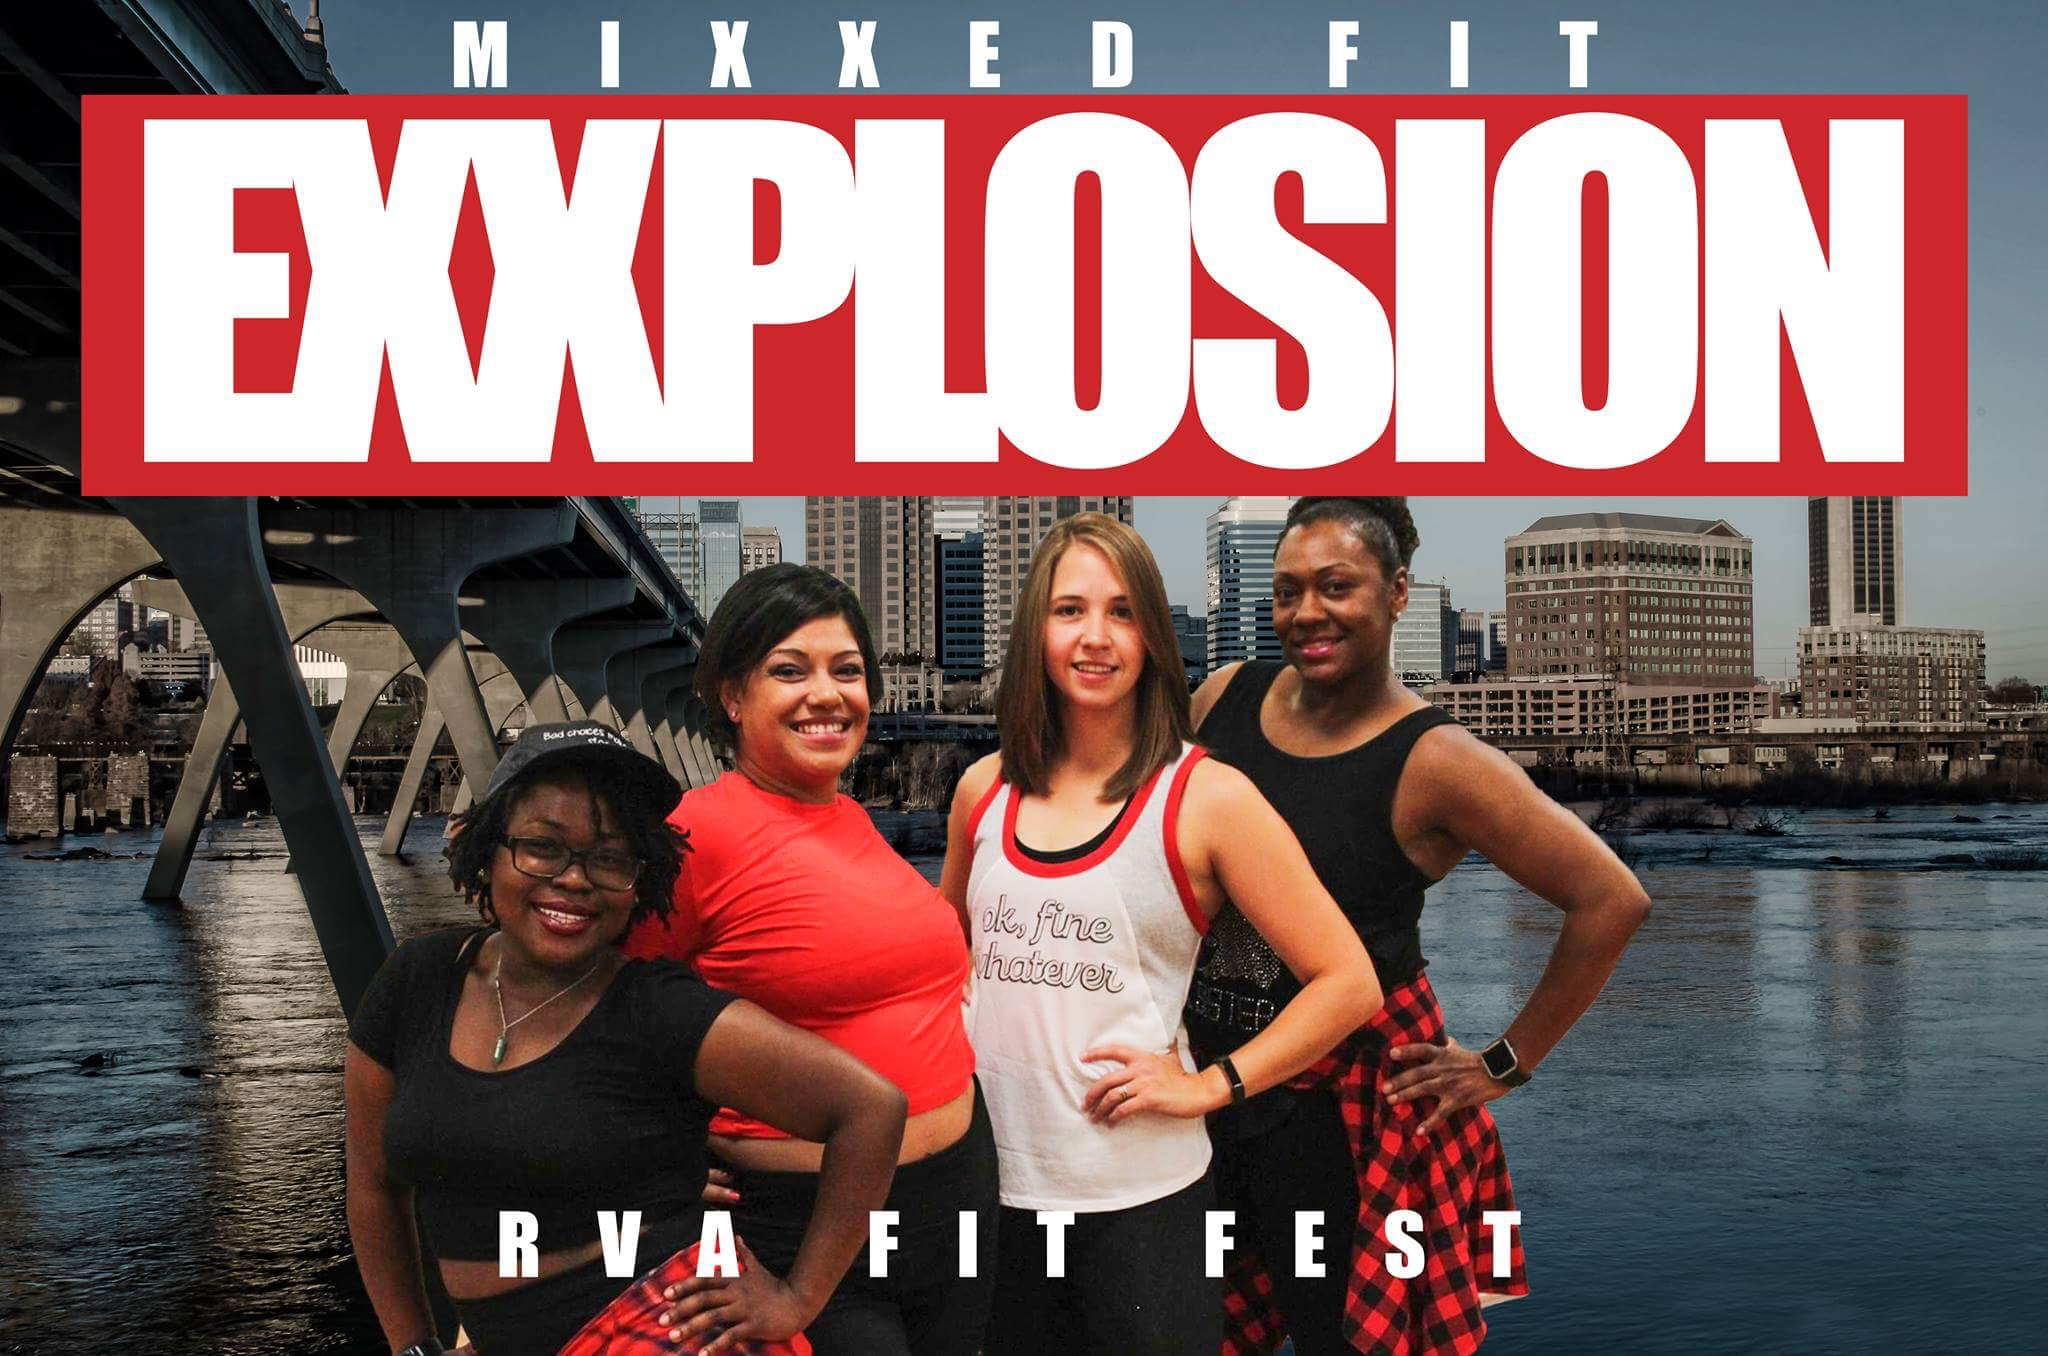 MiXXed Fit Explosion